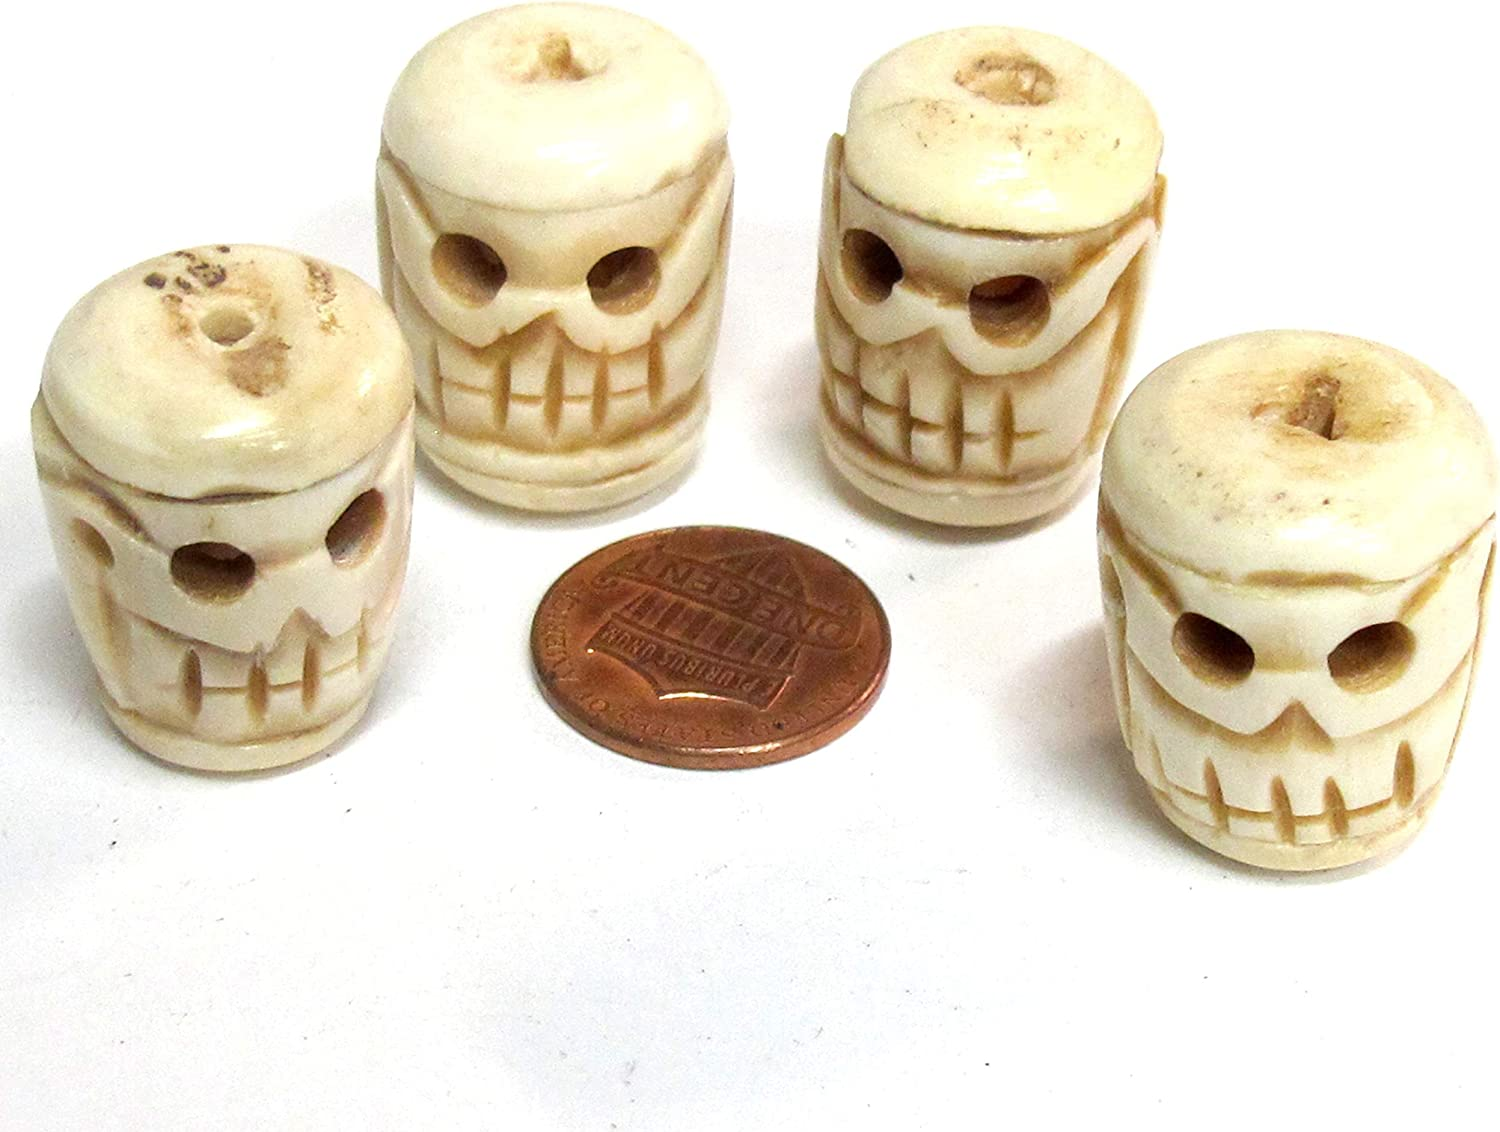 Amazon Com 4 Beads Large Thick Handmade Skull Carved Handmade Old Bone Beads Cream Color Hb014ks Arts Crafts Sewing